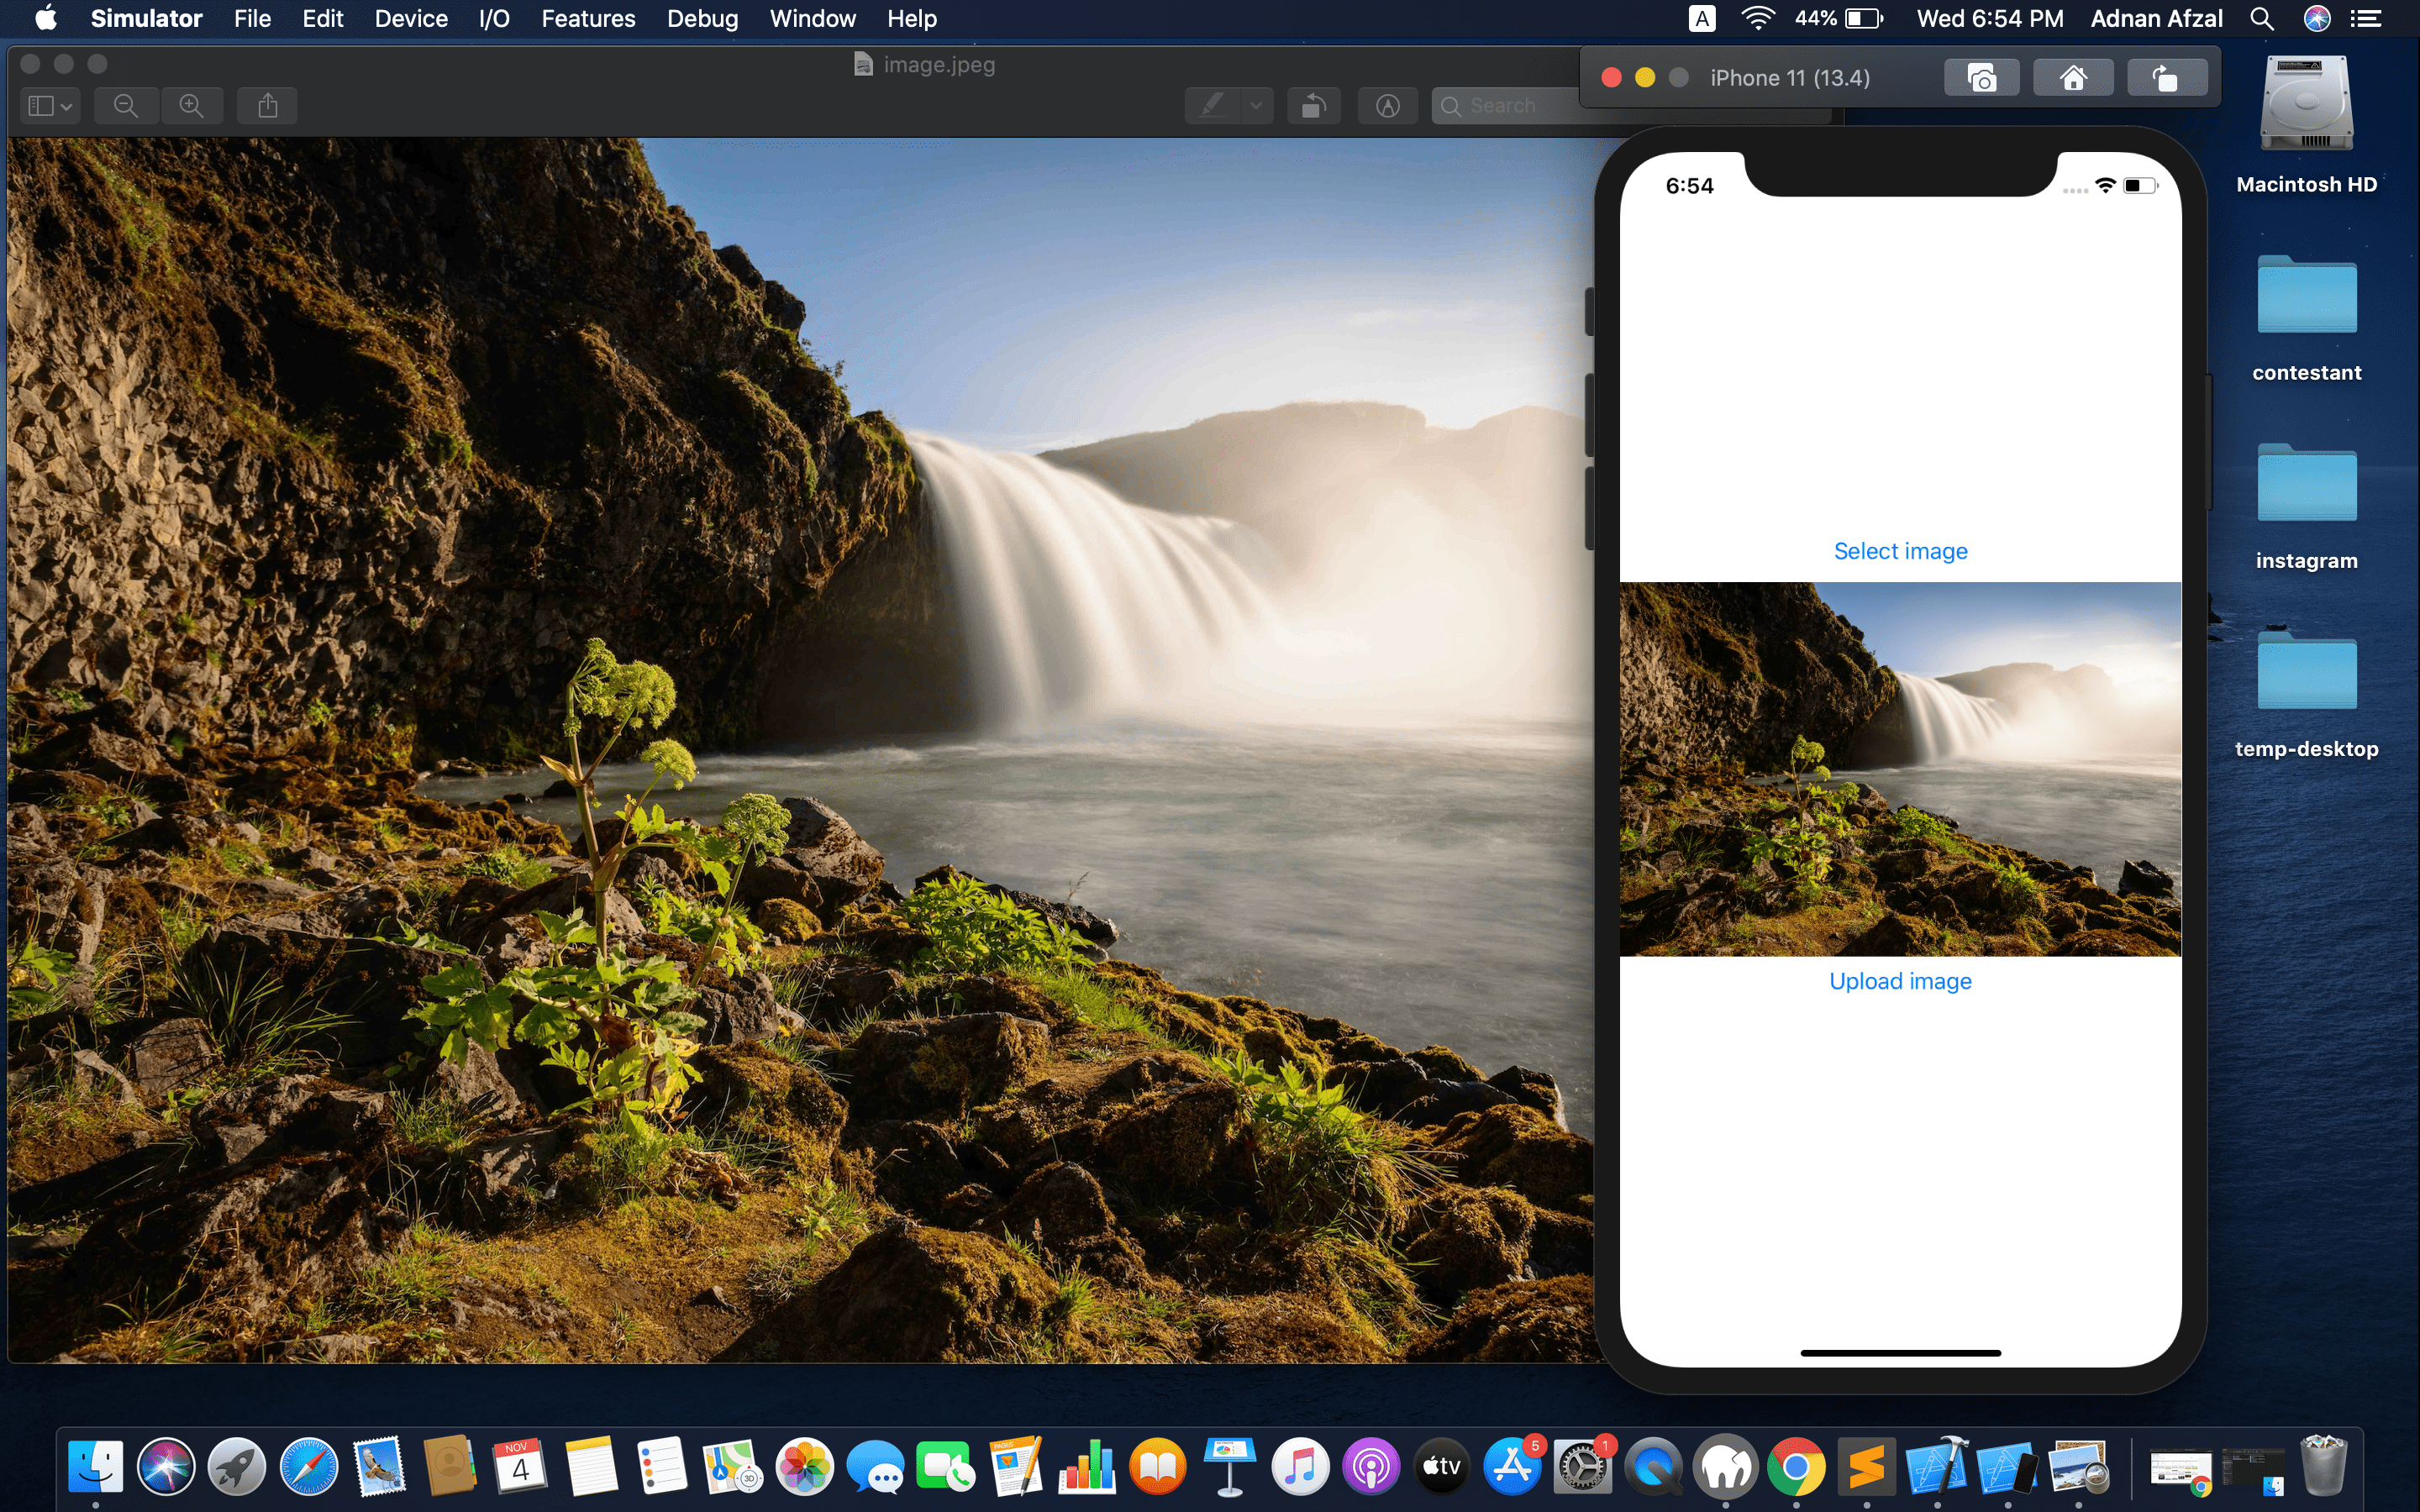 Pick image from gallery and upload to server - SwiftUI and PHP